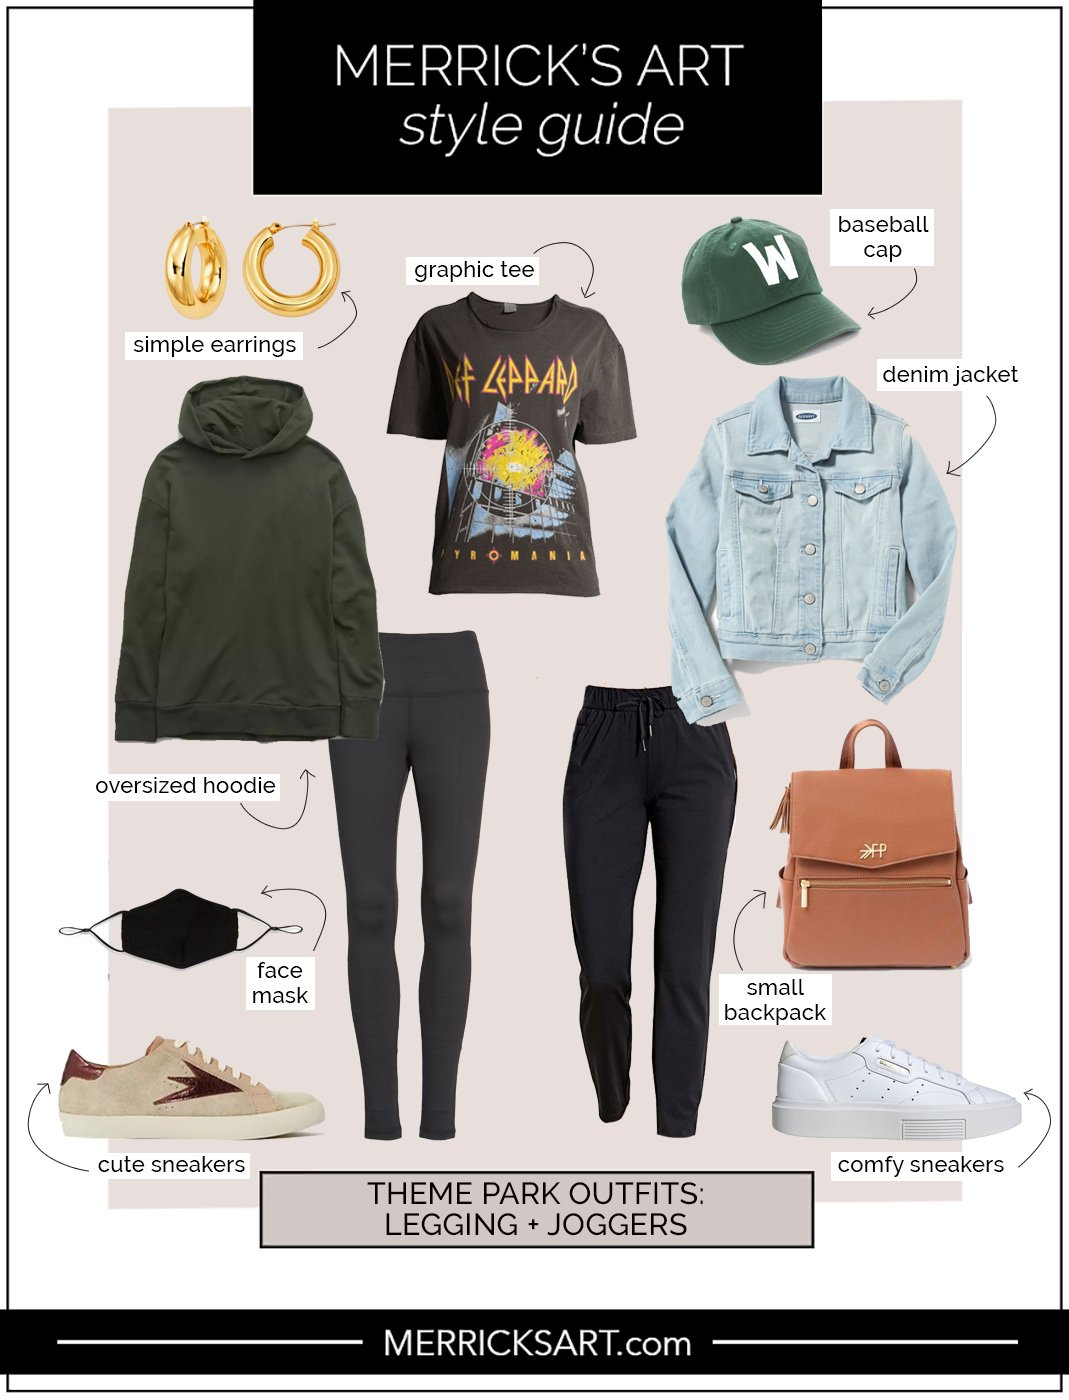 theme park outfits with leggings and joggers